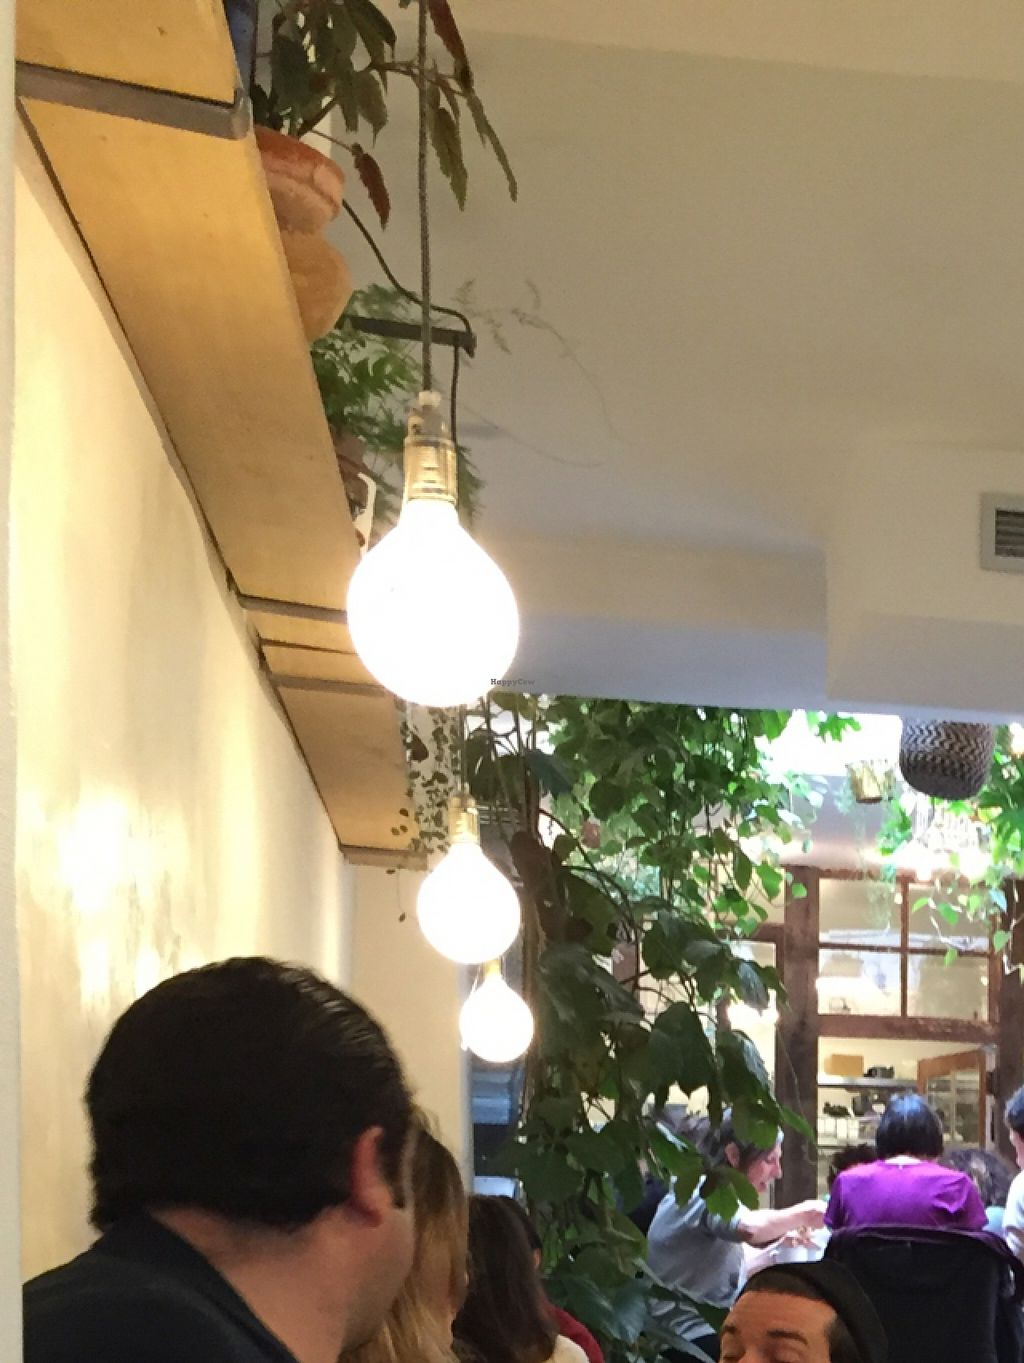 """Photo of Wild & The Moon - rue Charlot  by <a href=""""/members/profile/Robby99"""">Robby99</a> <br/>looking back from the center of the restaurant <br/> May 10, 2016  - <a href='/contact/abuse/image/70212/148380'>Report</a>"""